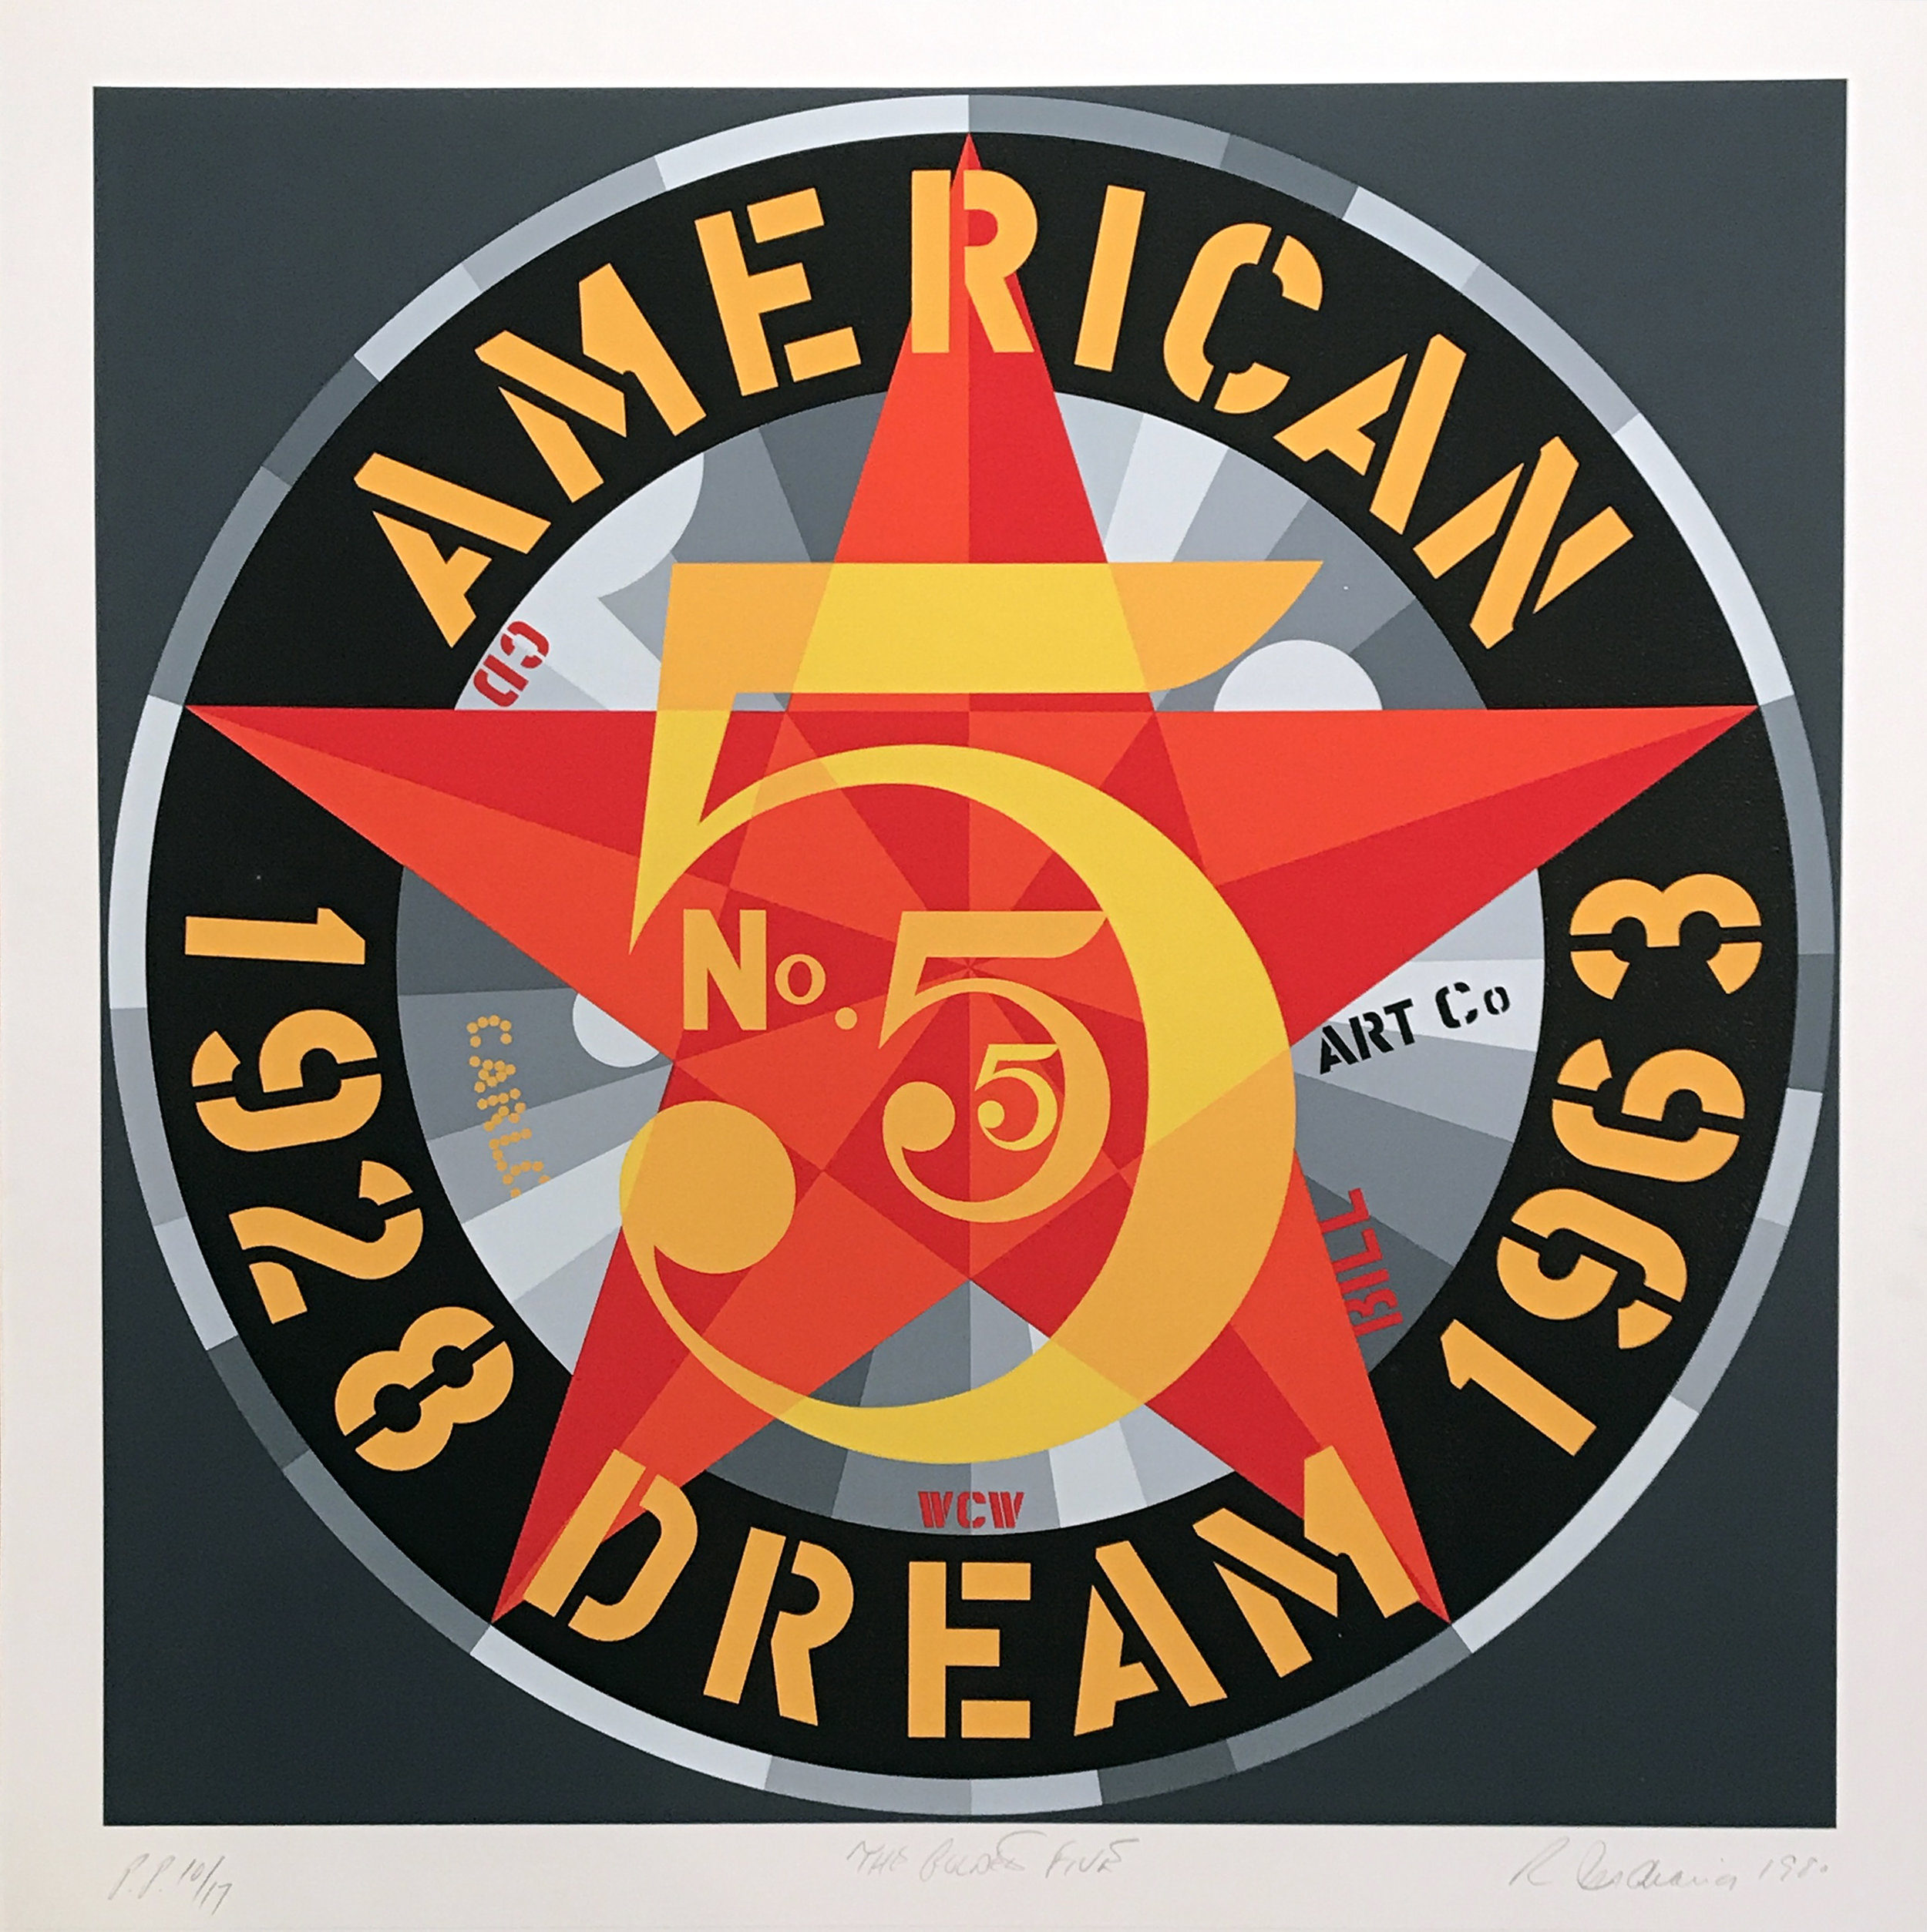 Robert Indiana  The Golden Five,  1980. Serigraph in colors on five sheets of Fabriano 100% rag paper, ed. P.P. 10/17 26 3/4 x 26 3/4 in.